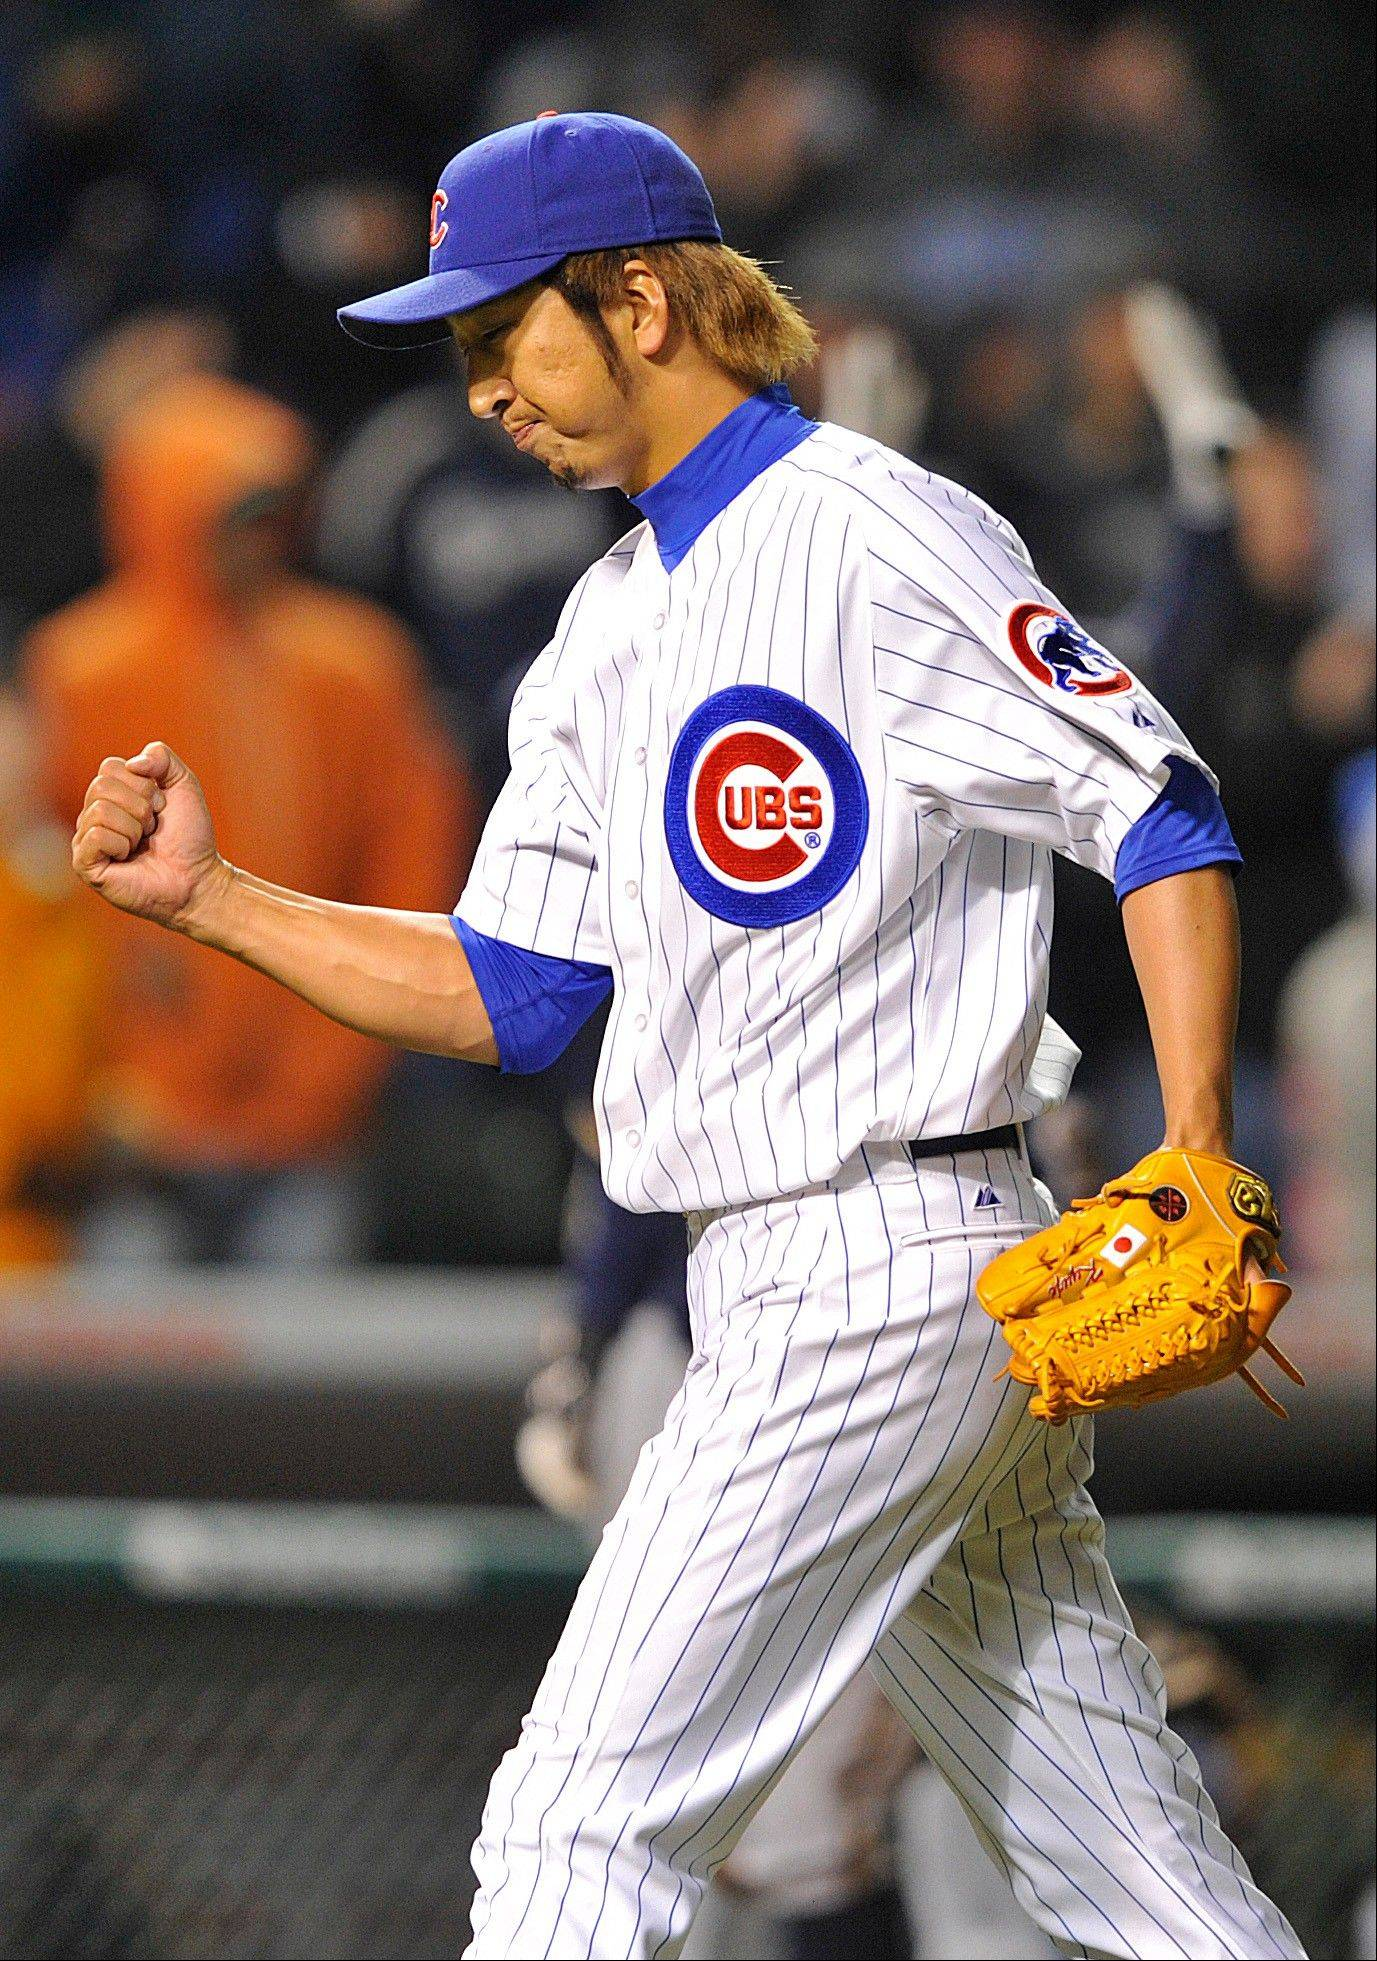 Kyuji Fujikawa reacts after saving the Cubs' 6-3 victory over Milwaukee on Tuesday at Wrigley Field.